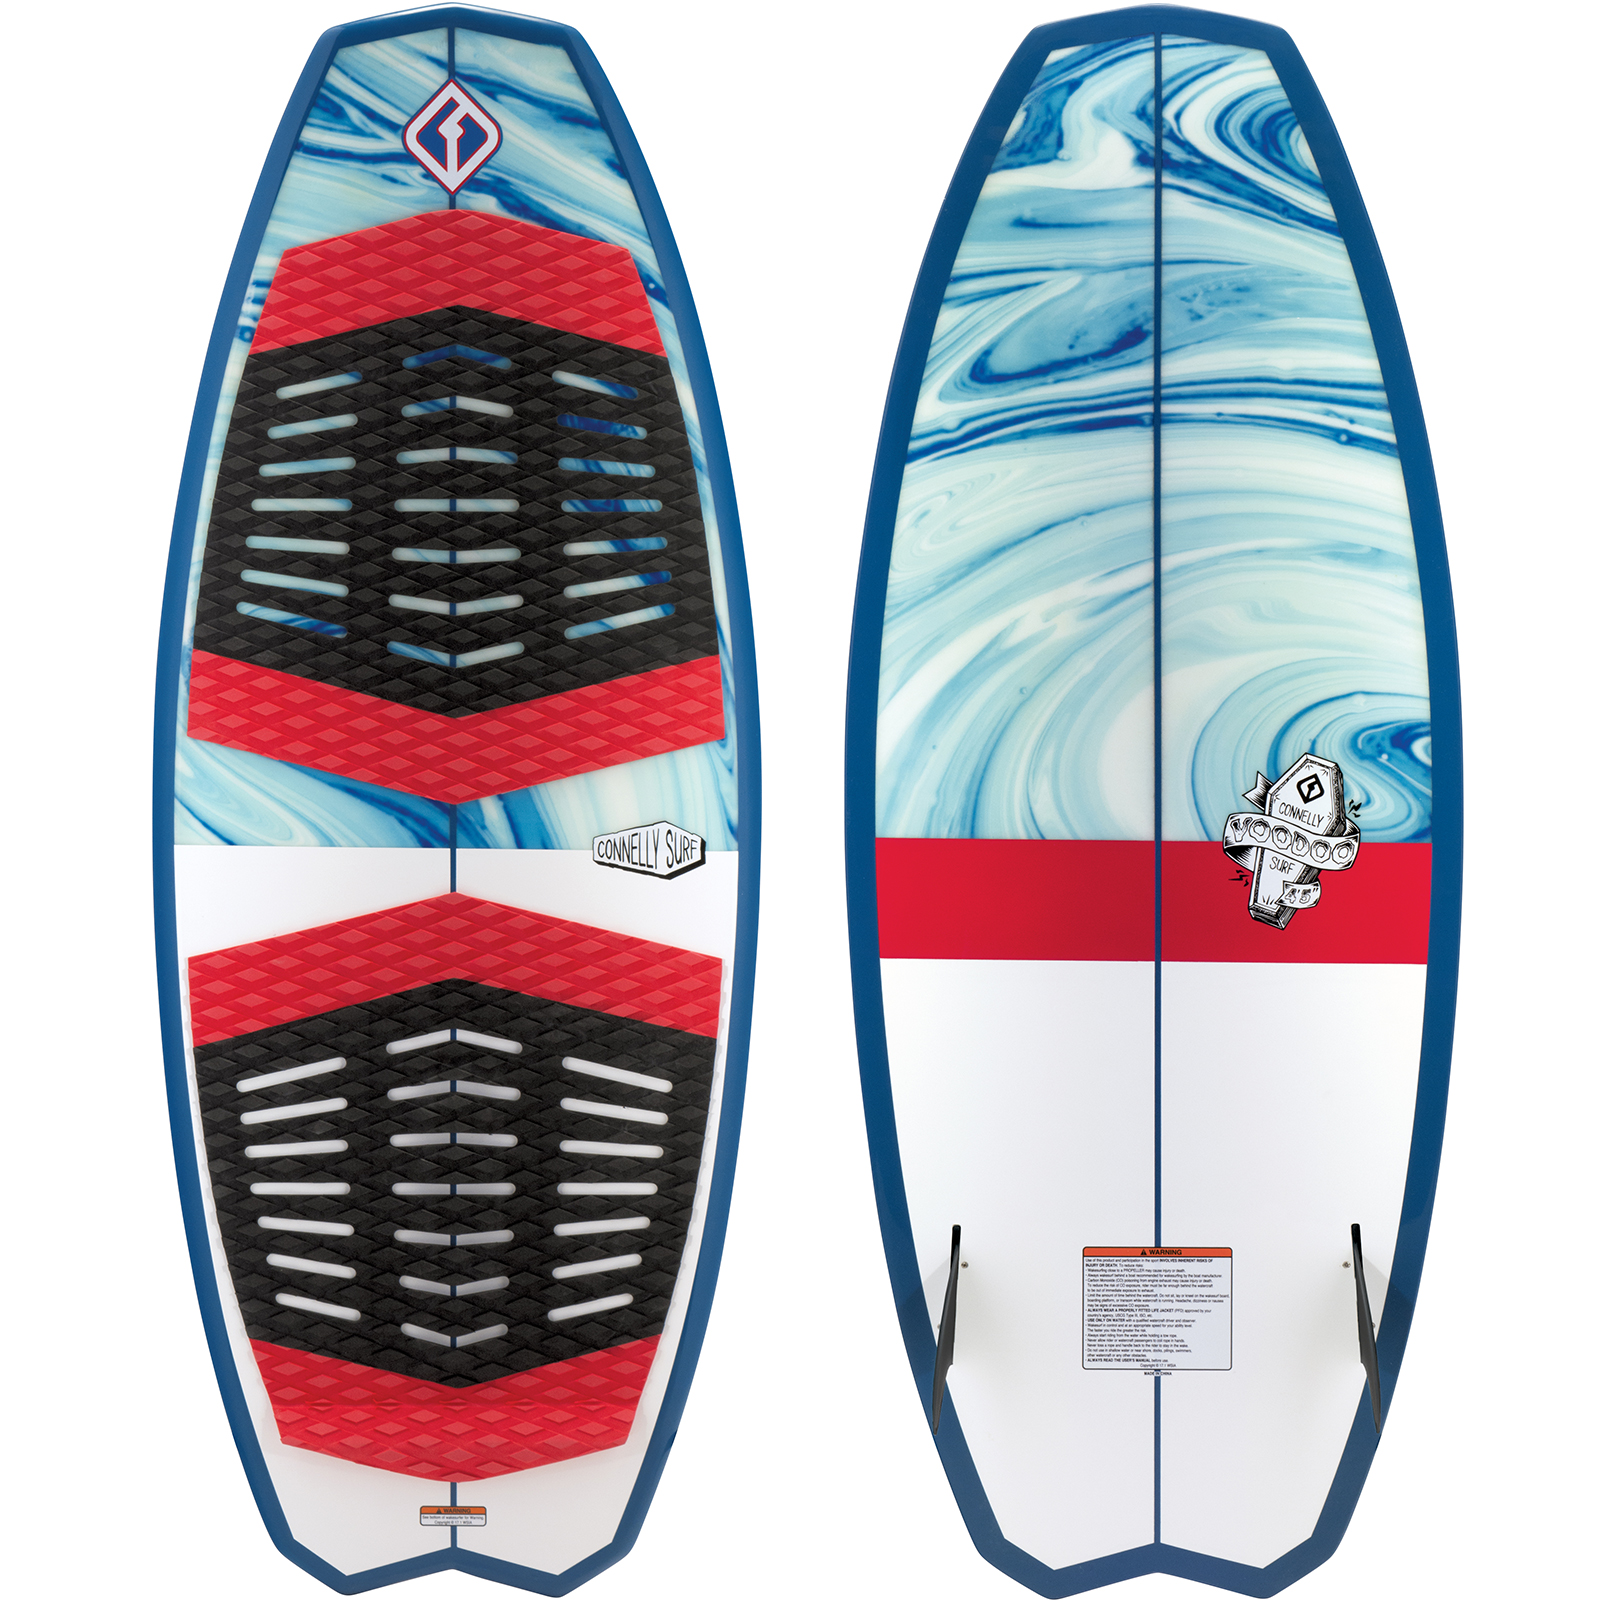 VOODOO 4.5 WAKESURFER CONNELLY 2018